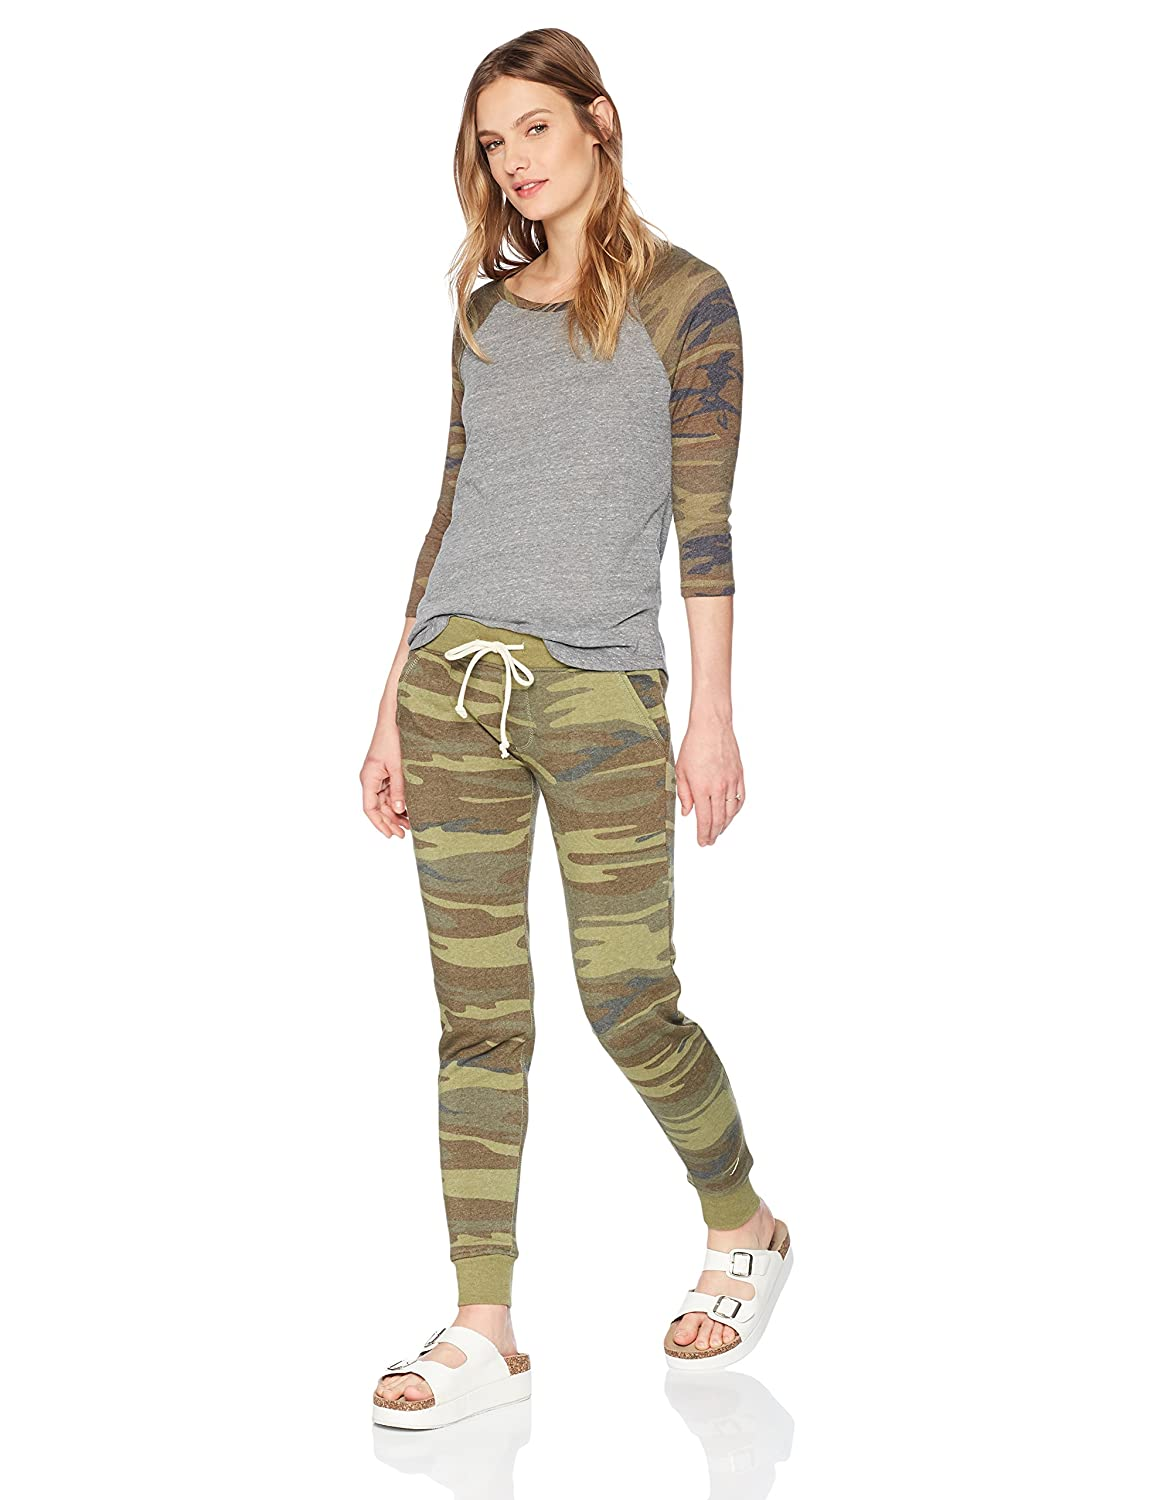 Eco grey camo Alternative Womens Snug Set Tracksuit